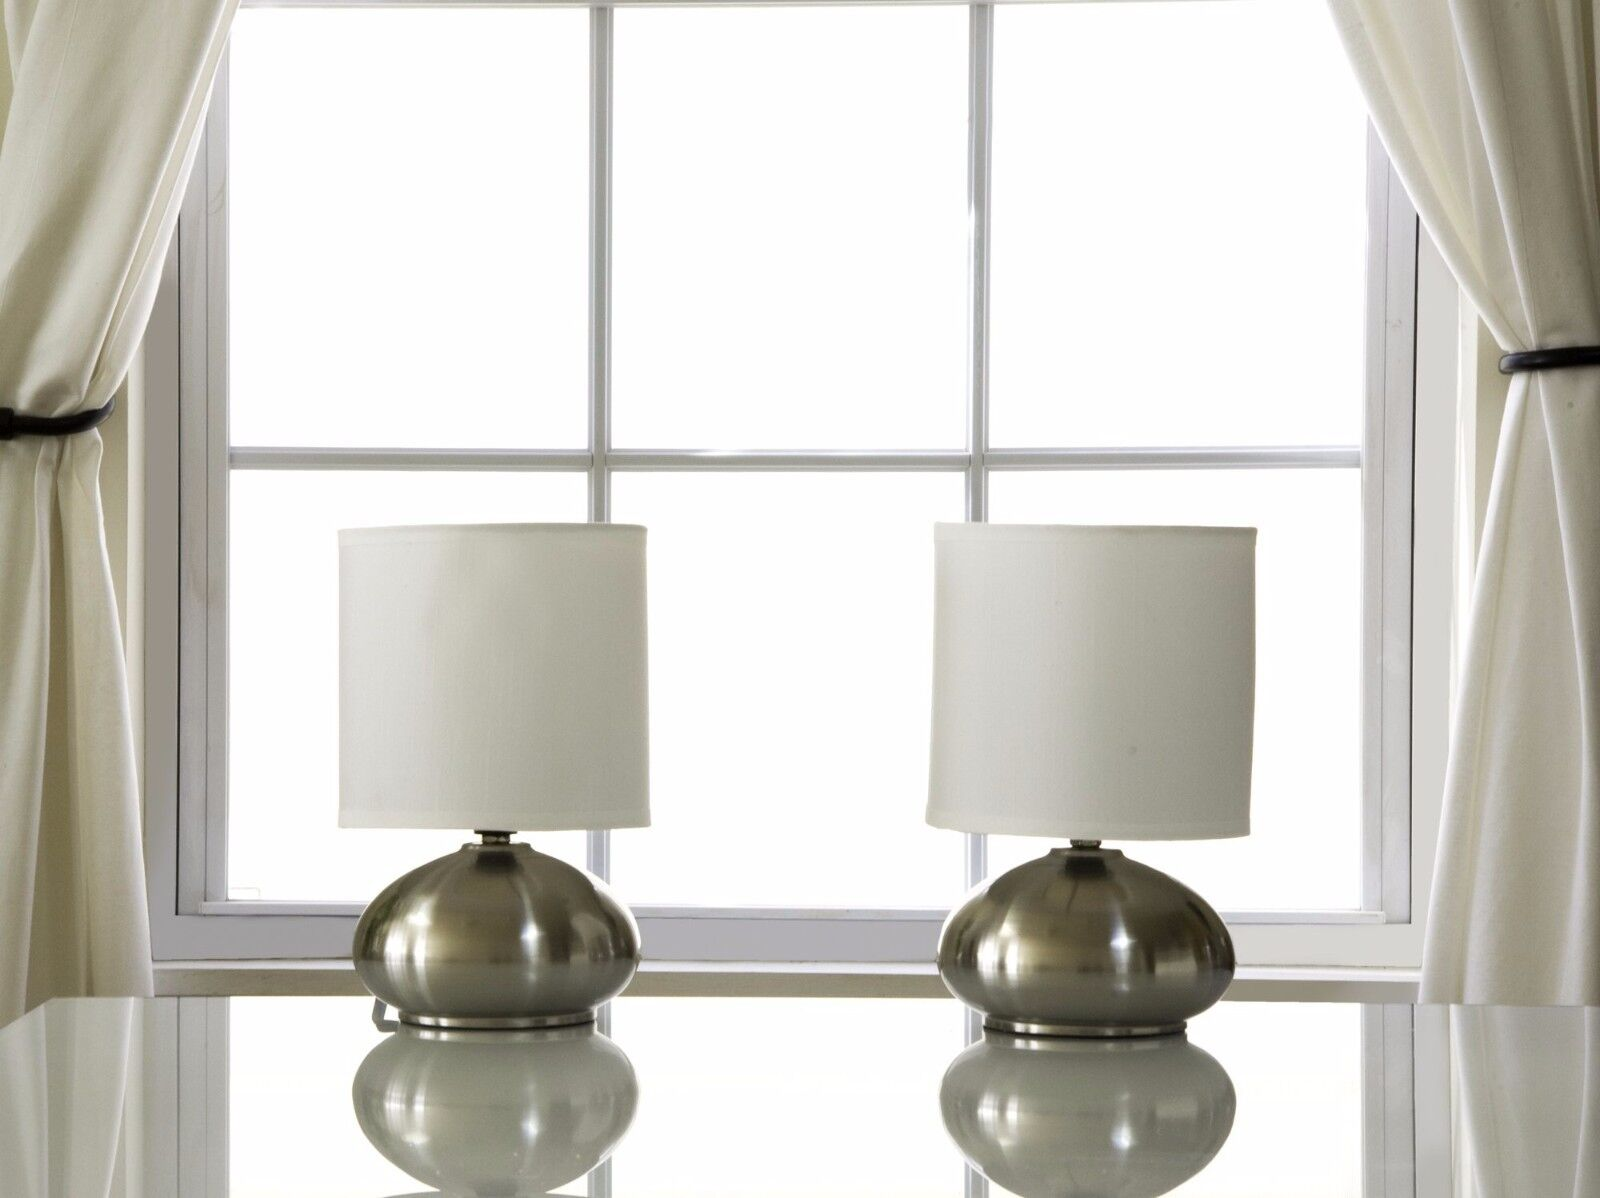 Bedside Touch Lamps White Table Lamps For Bedroom